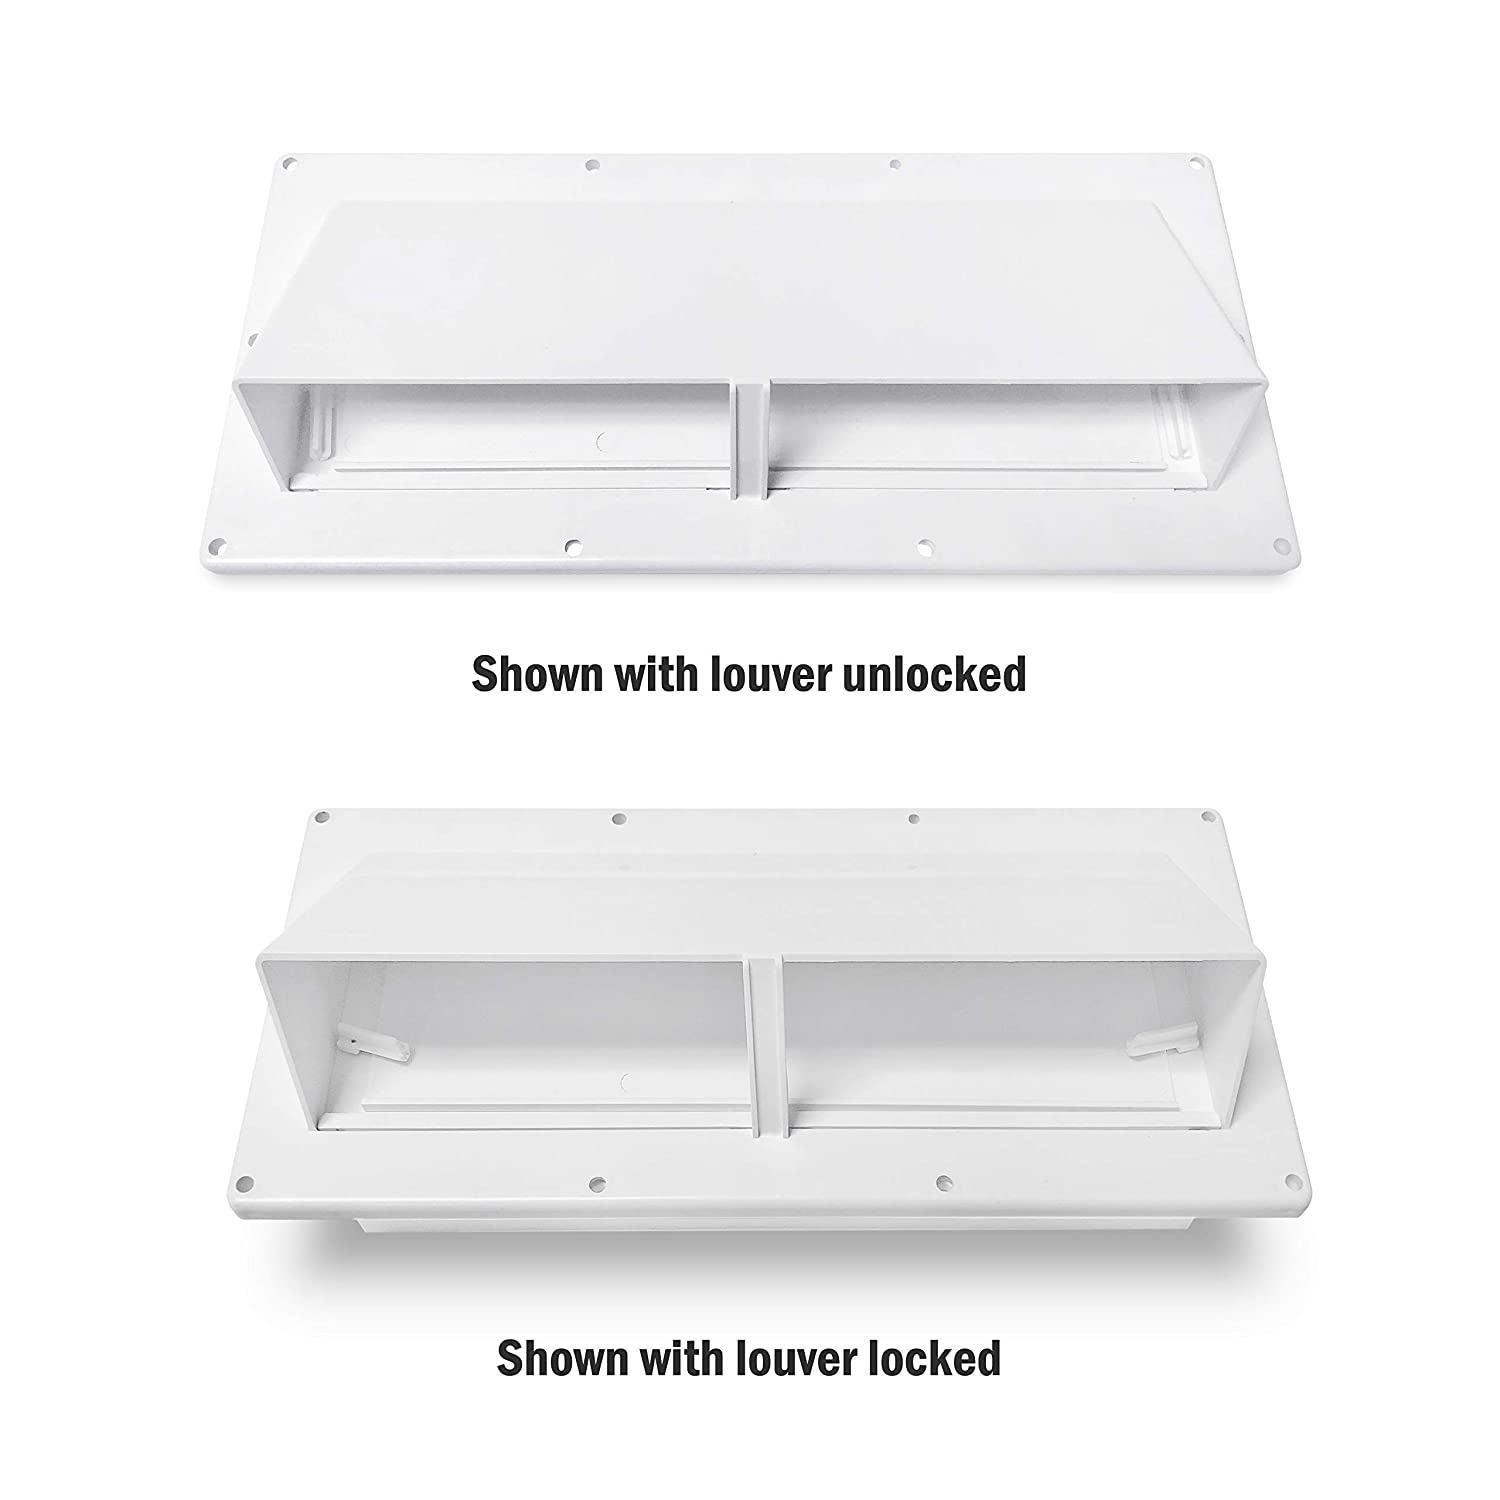 Polar White Kohree RV Exhaust Vent Cover with Locking Damper RV Range Hood Vent Mobile Home Parts for Motorhome Trailer